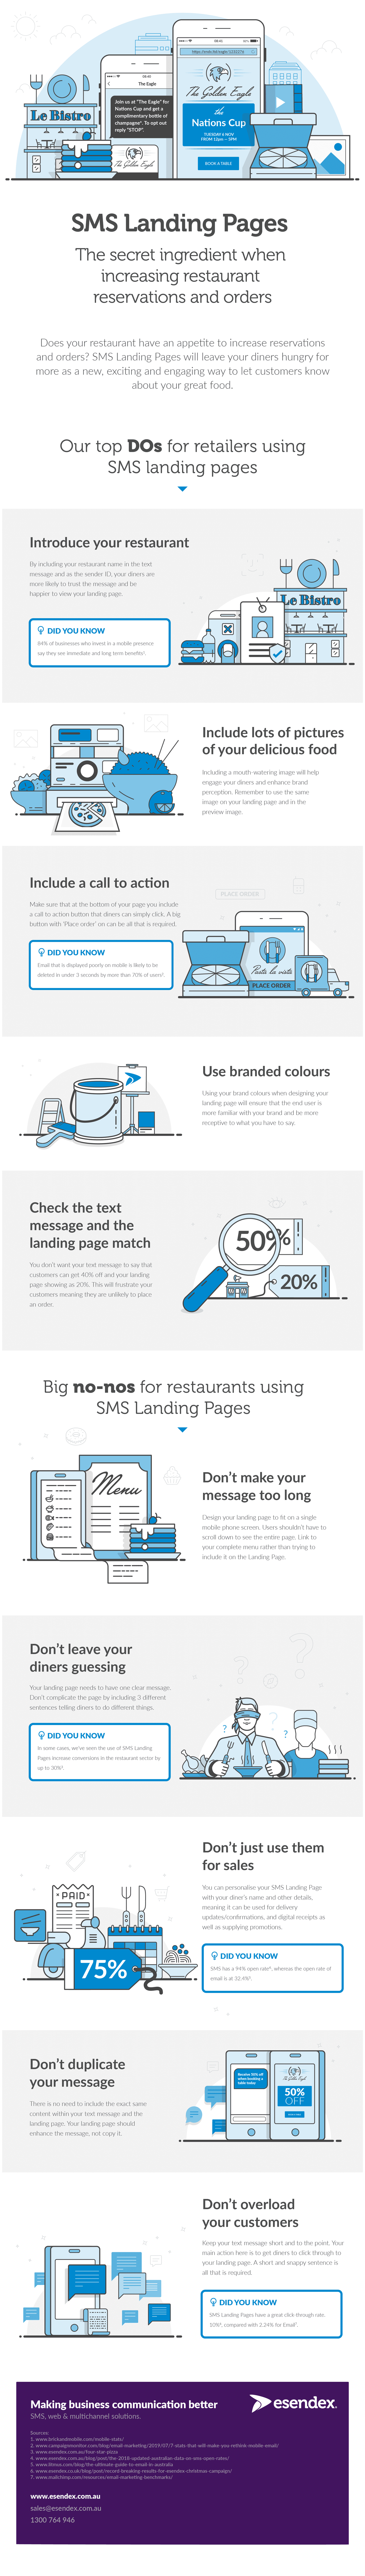 Dos and Don'ts of SMS Landing Pages for the hospitality sector